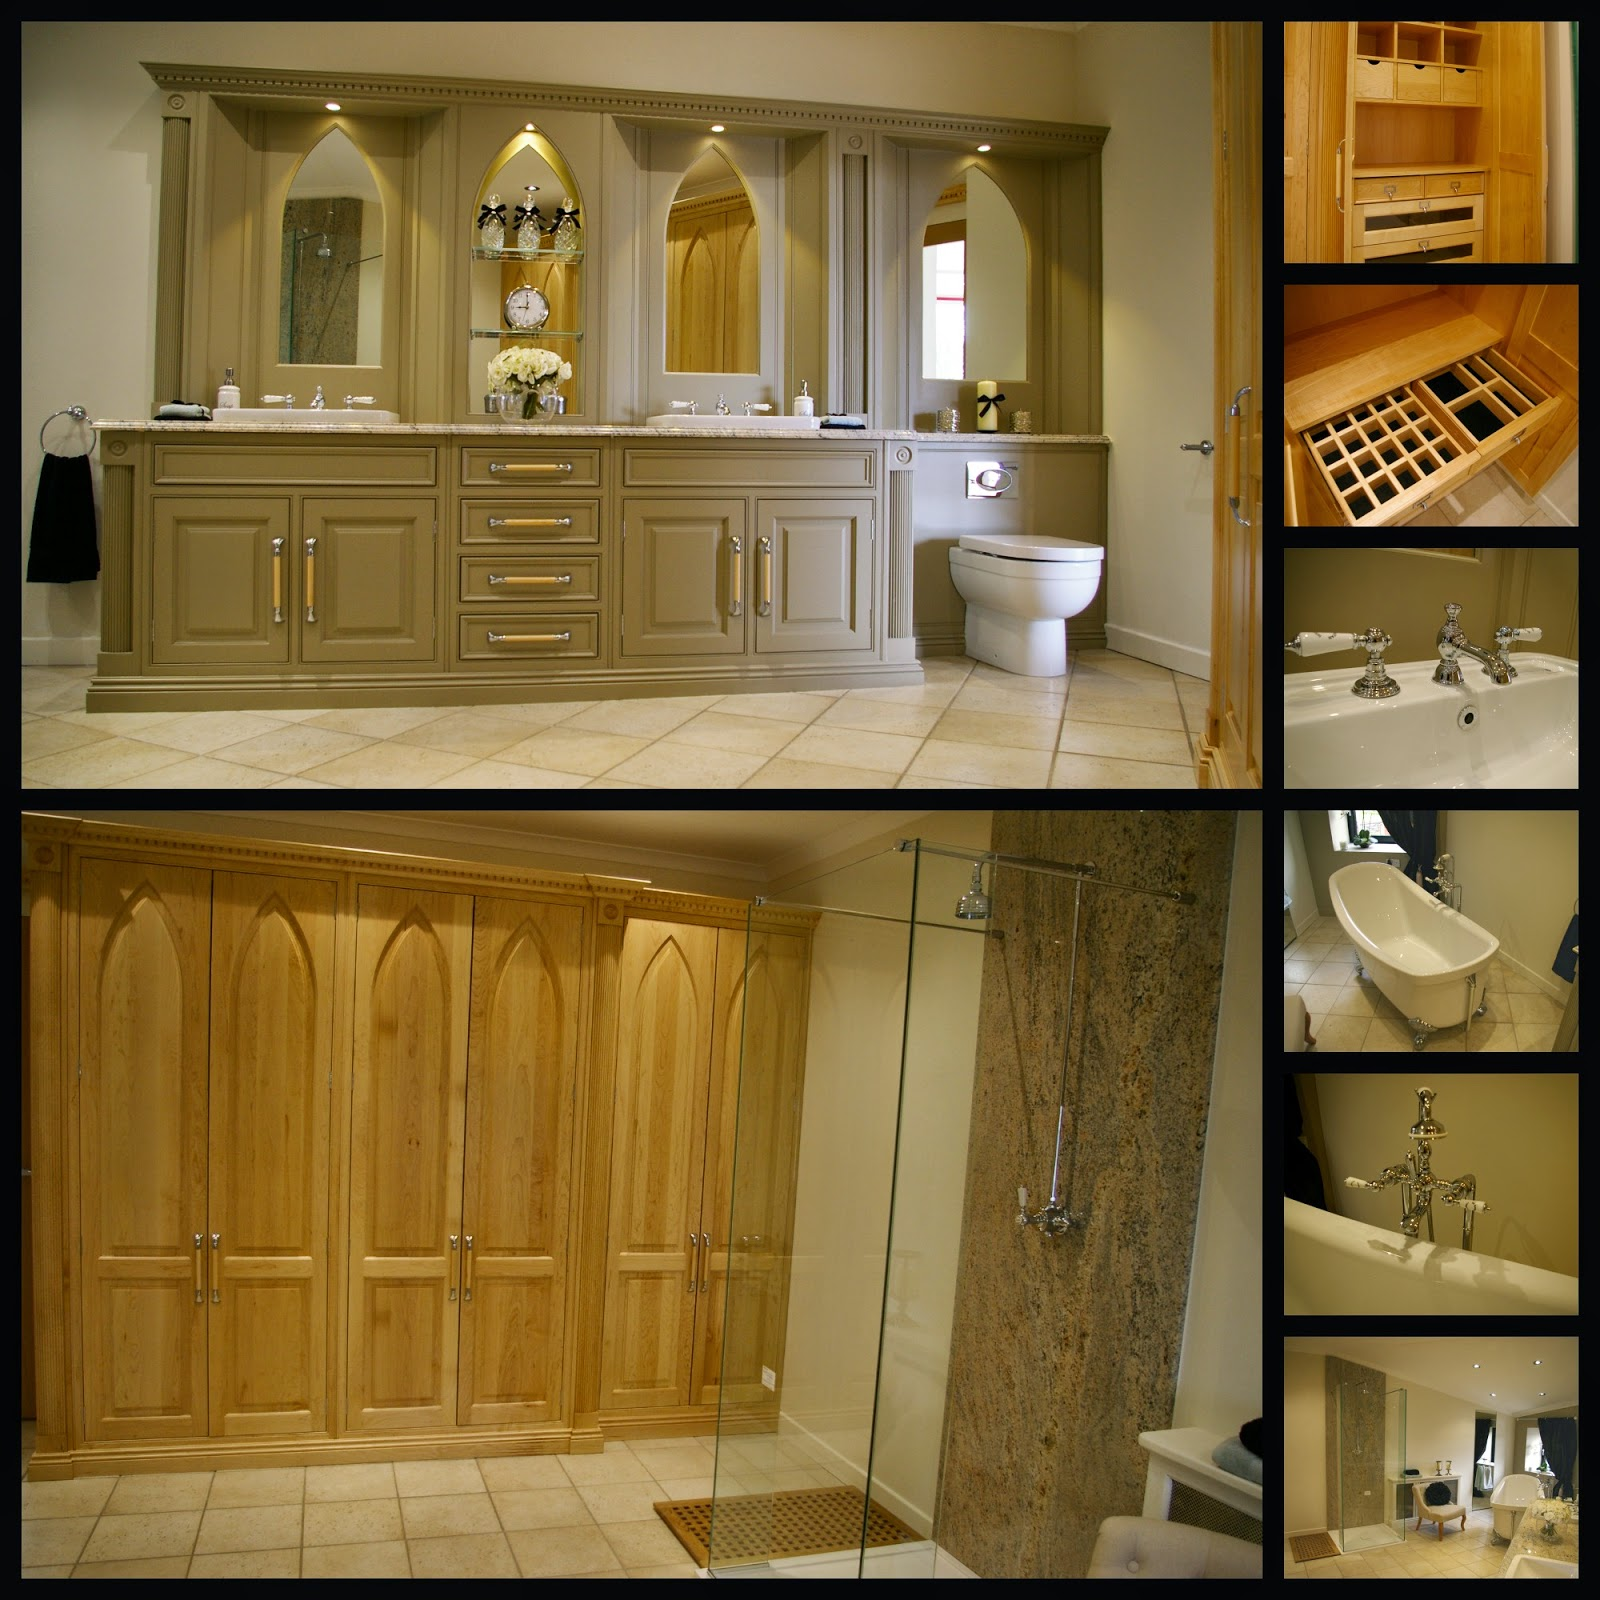 Callum walker interiors charles yorke ex display bathroom for Ex display home furniture for sale perth